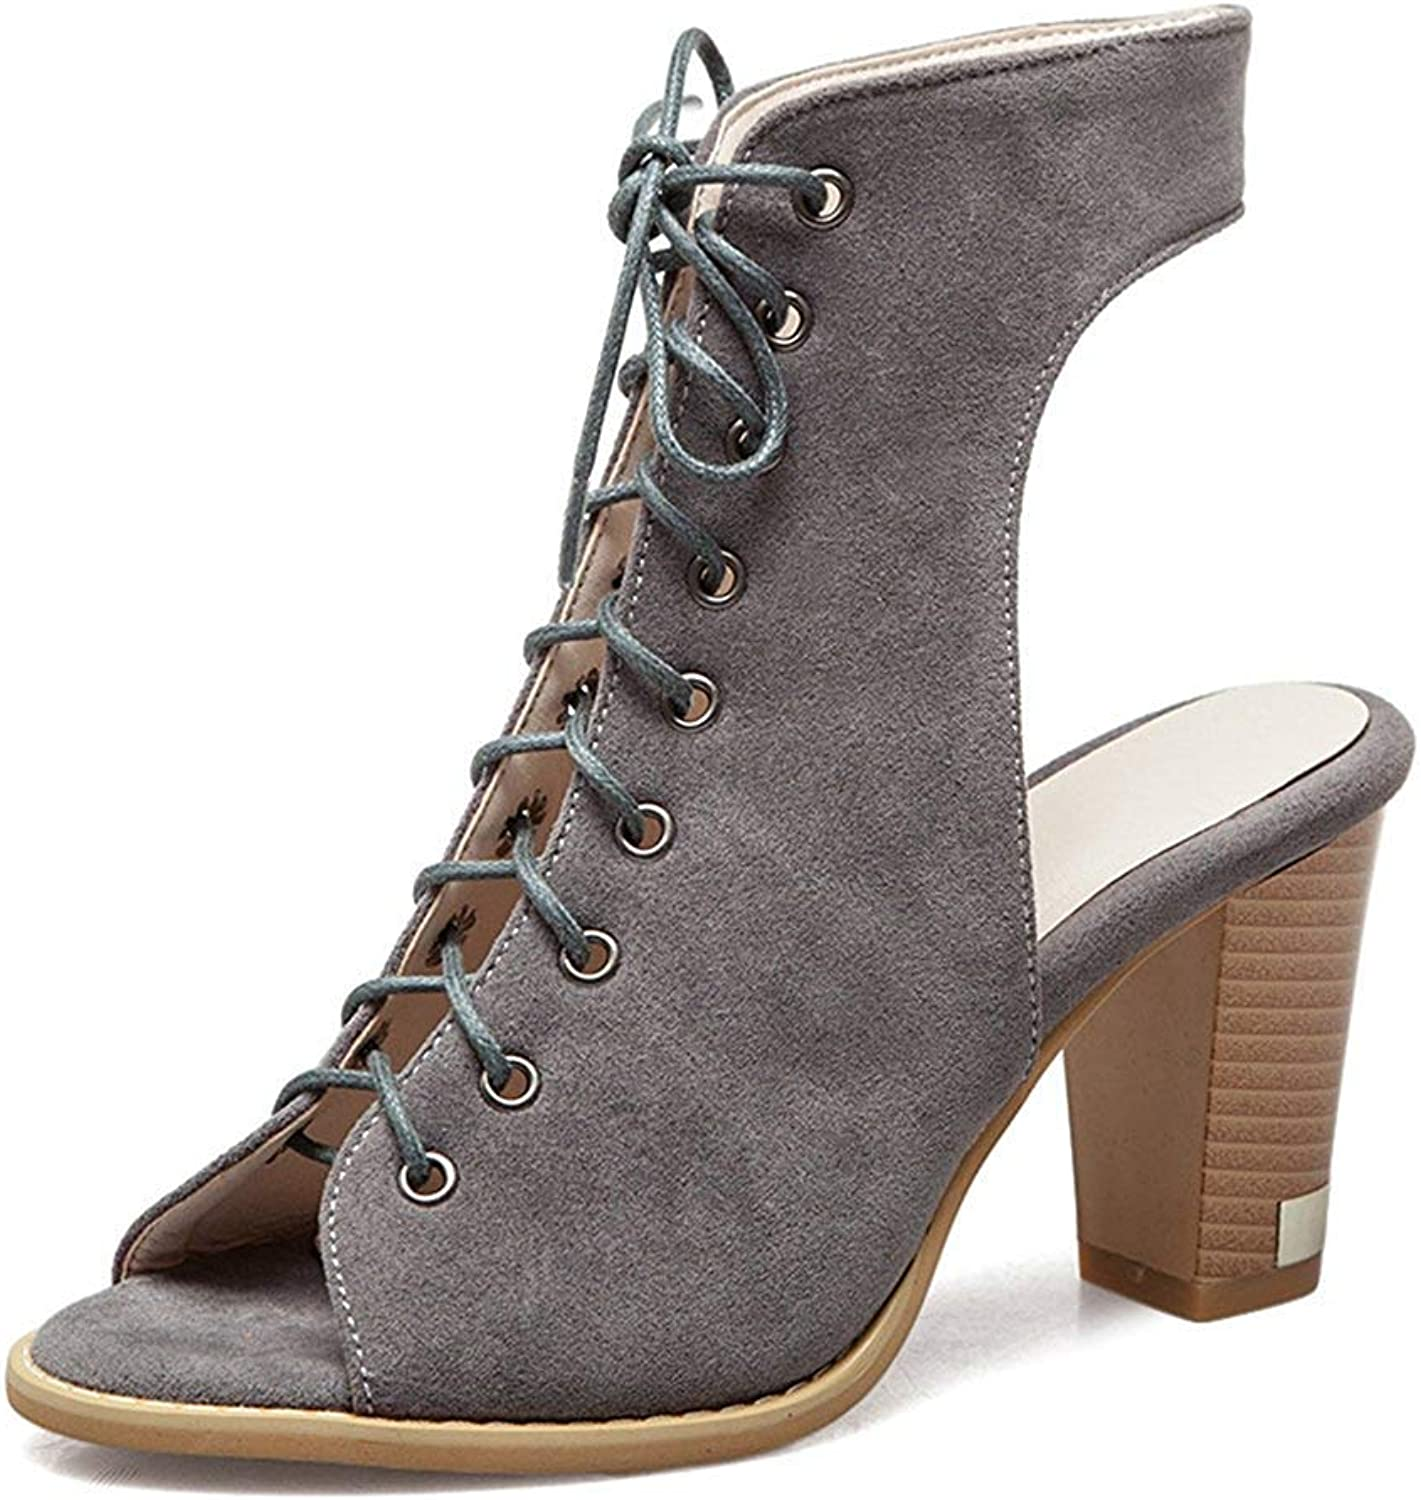 Unm Women's Peep Toe Sandals - Stylish Lace Up Stacked shoes - Gladiator High Heel Ankle High